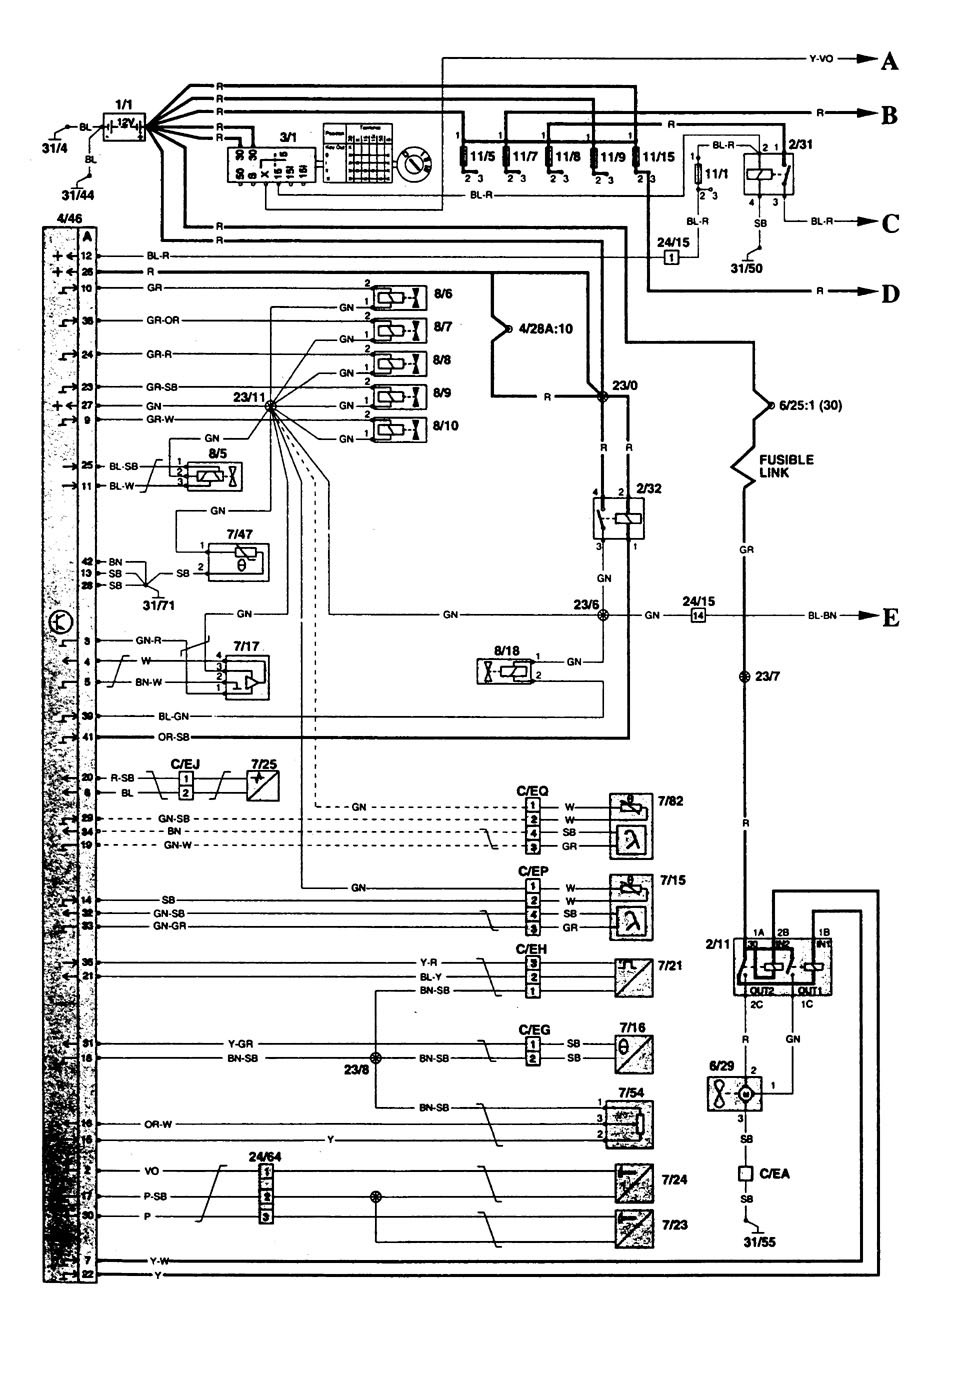 Volvo wiring diagram master electric motor